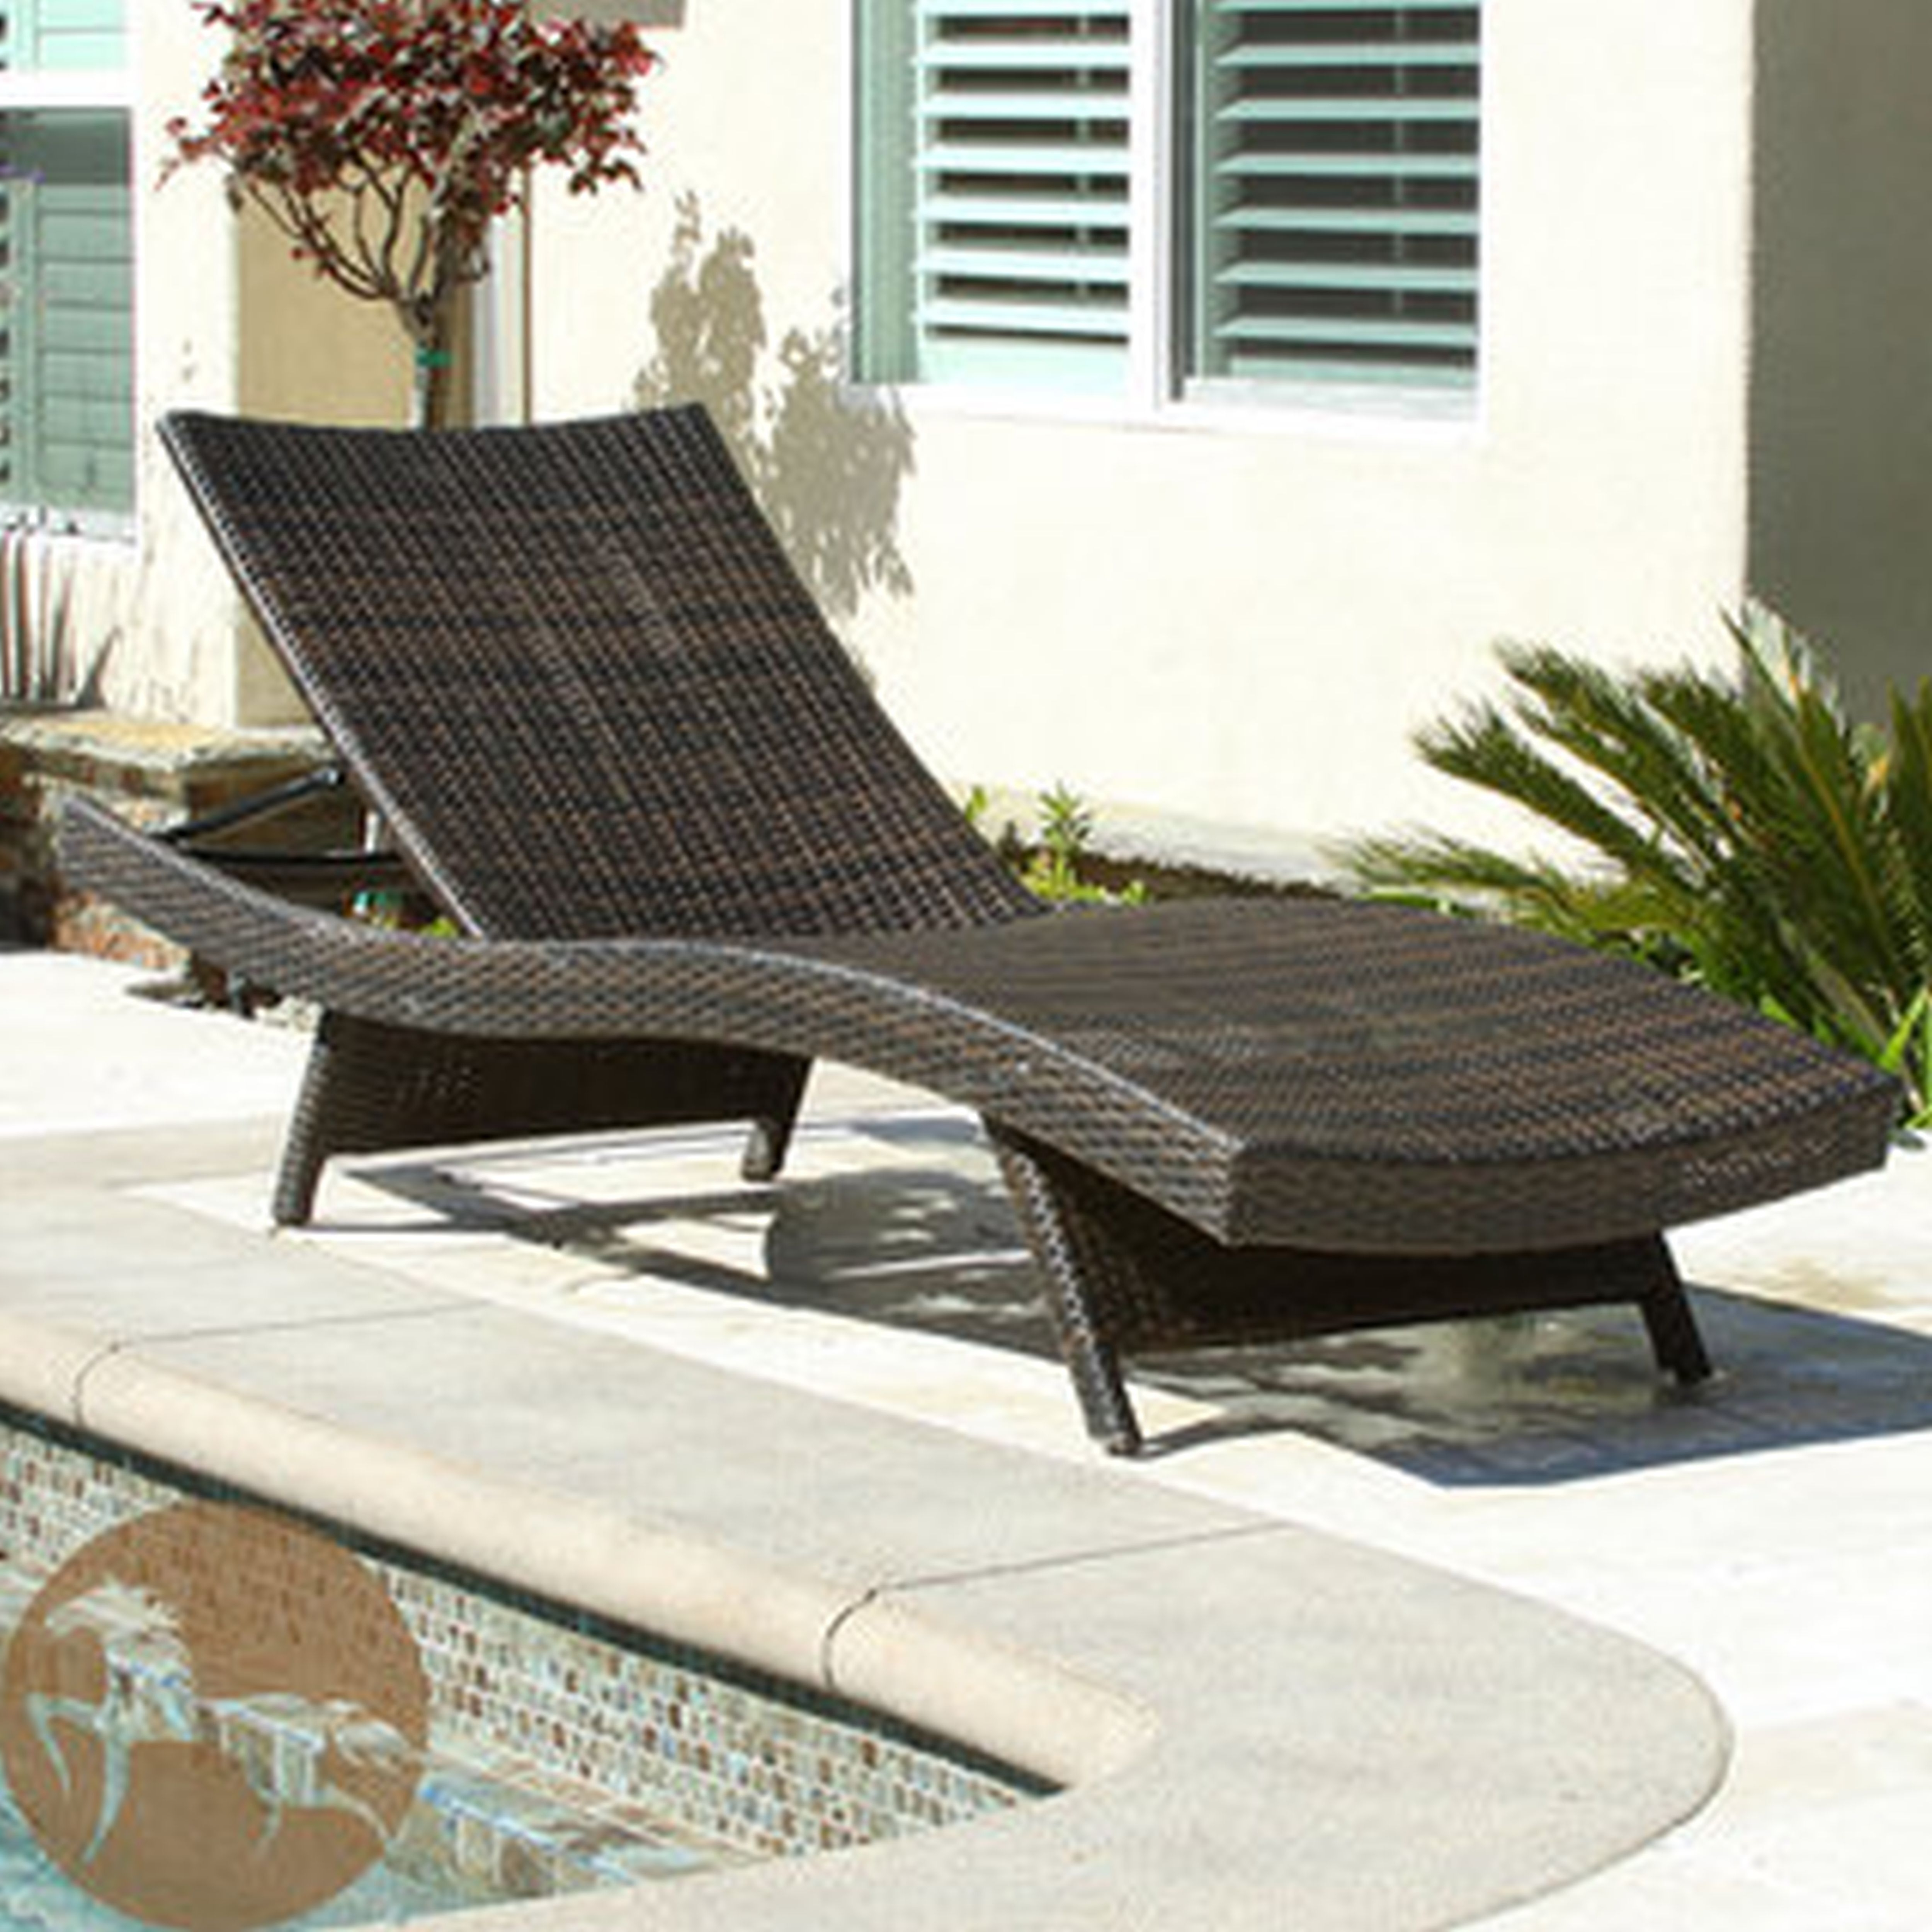 Outdoor : Chaise Lounge Sofa Lowes Patio Furniture Clearance With Most Current Chaise Lounge Chairs For Outdoor (View 10 of 15)